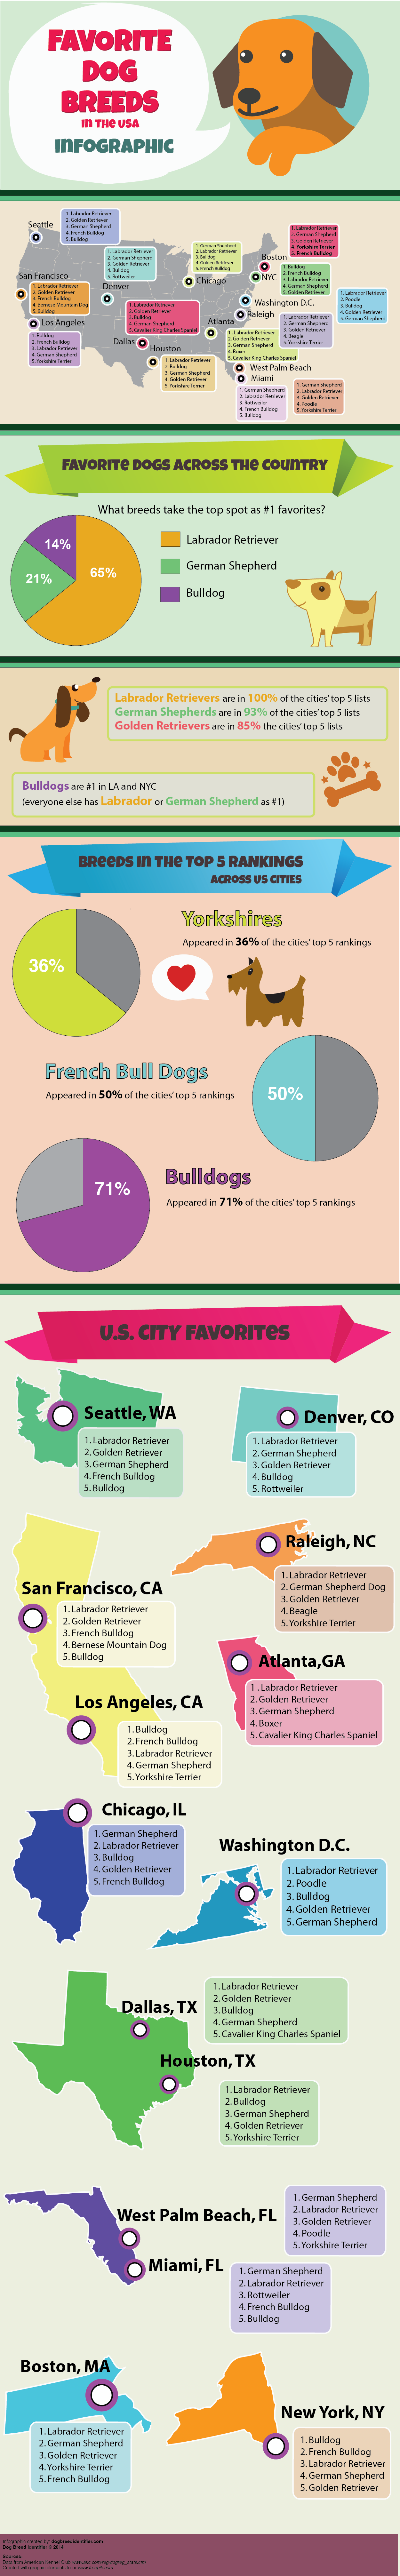 Top Dog Breeds in the USA Infographic